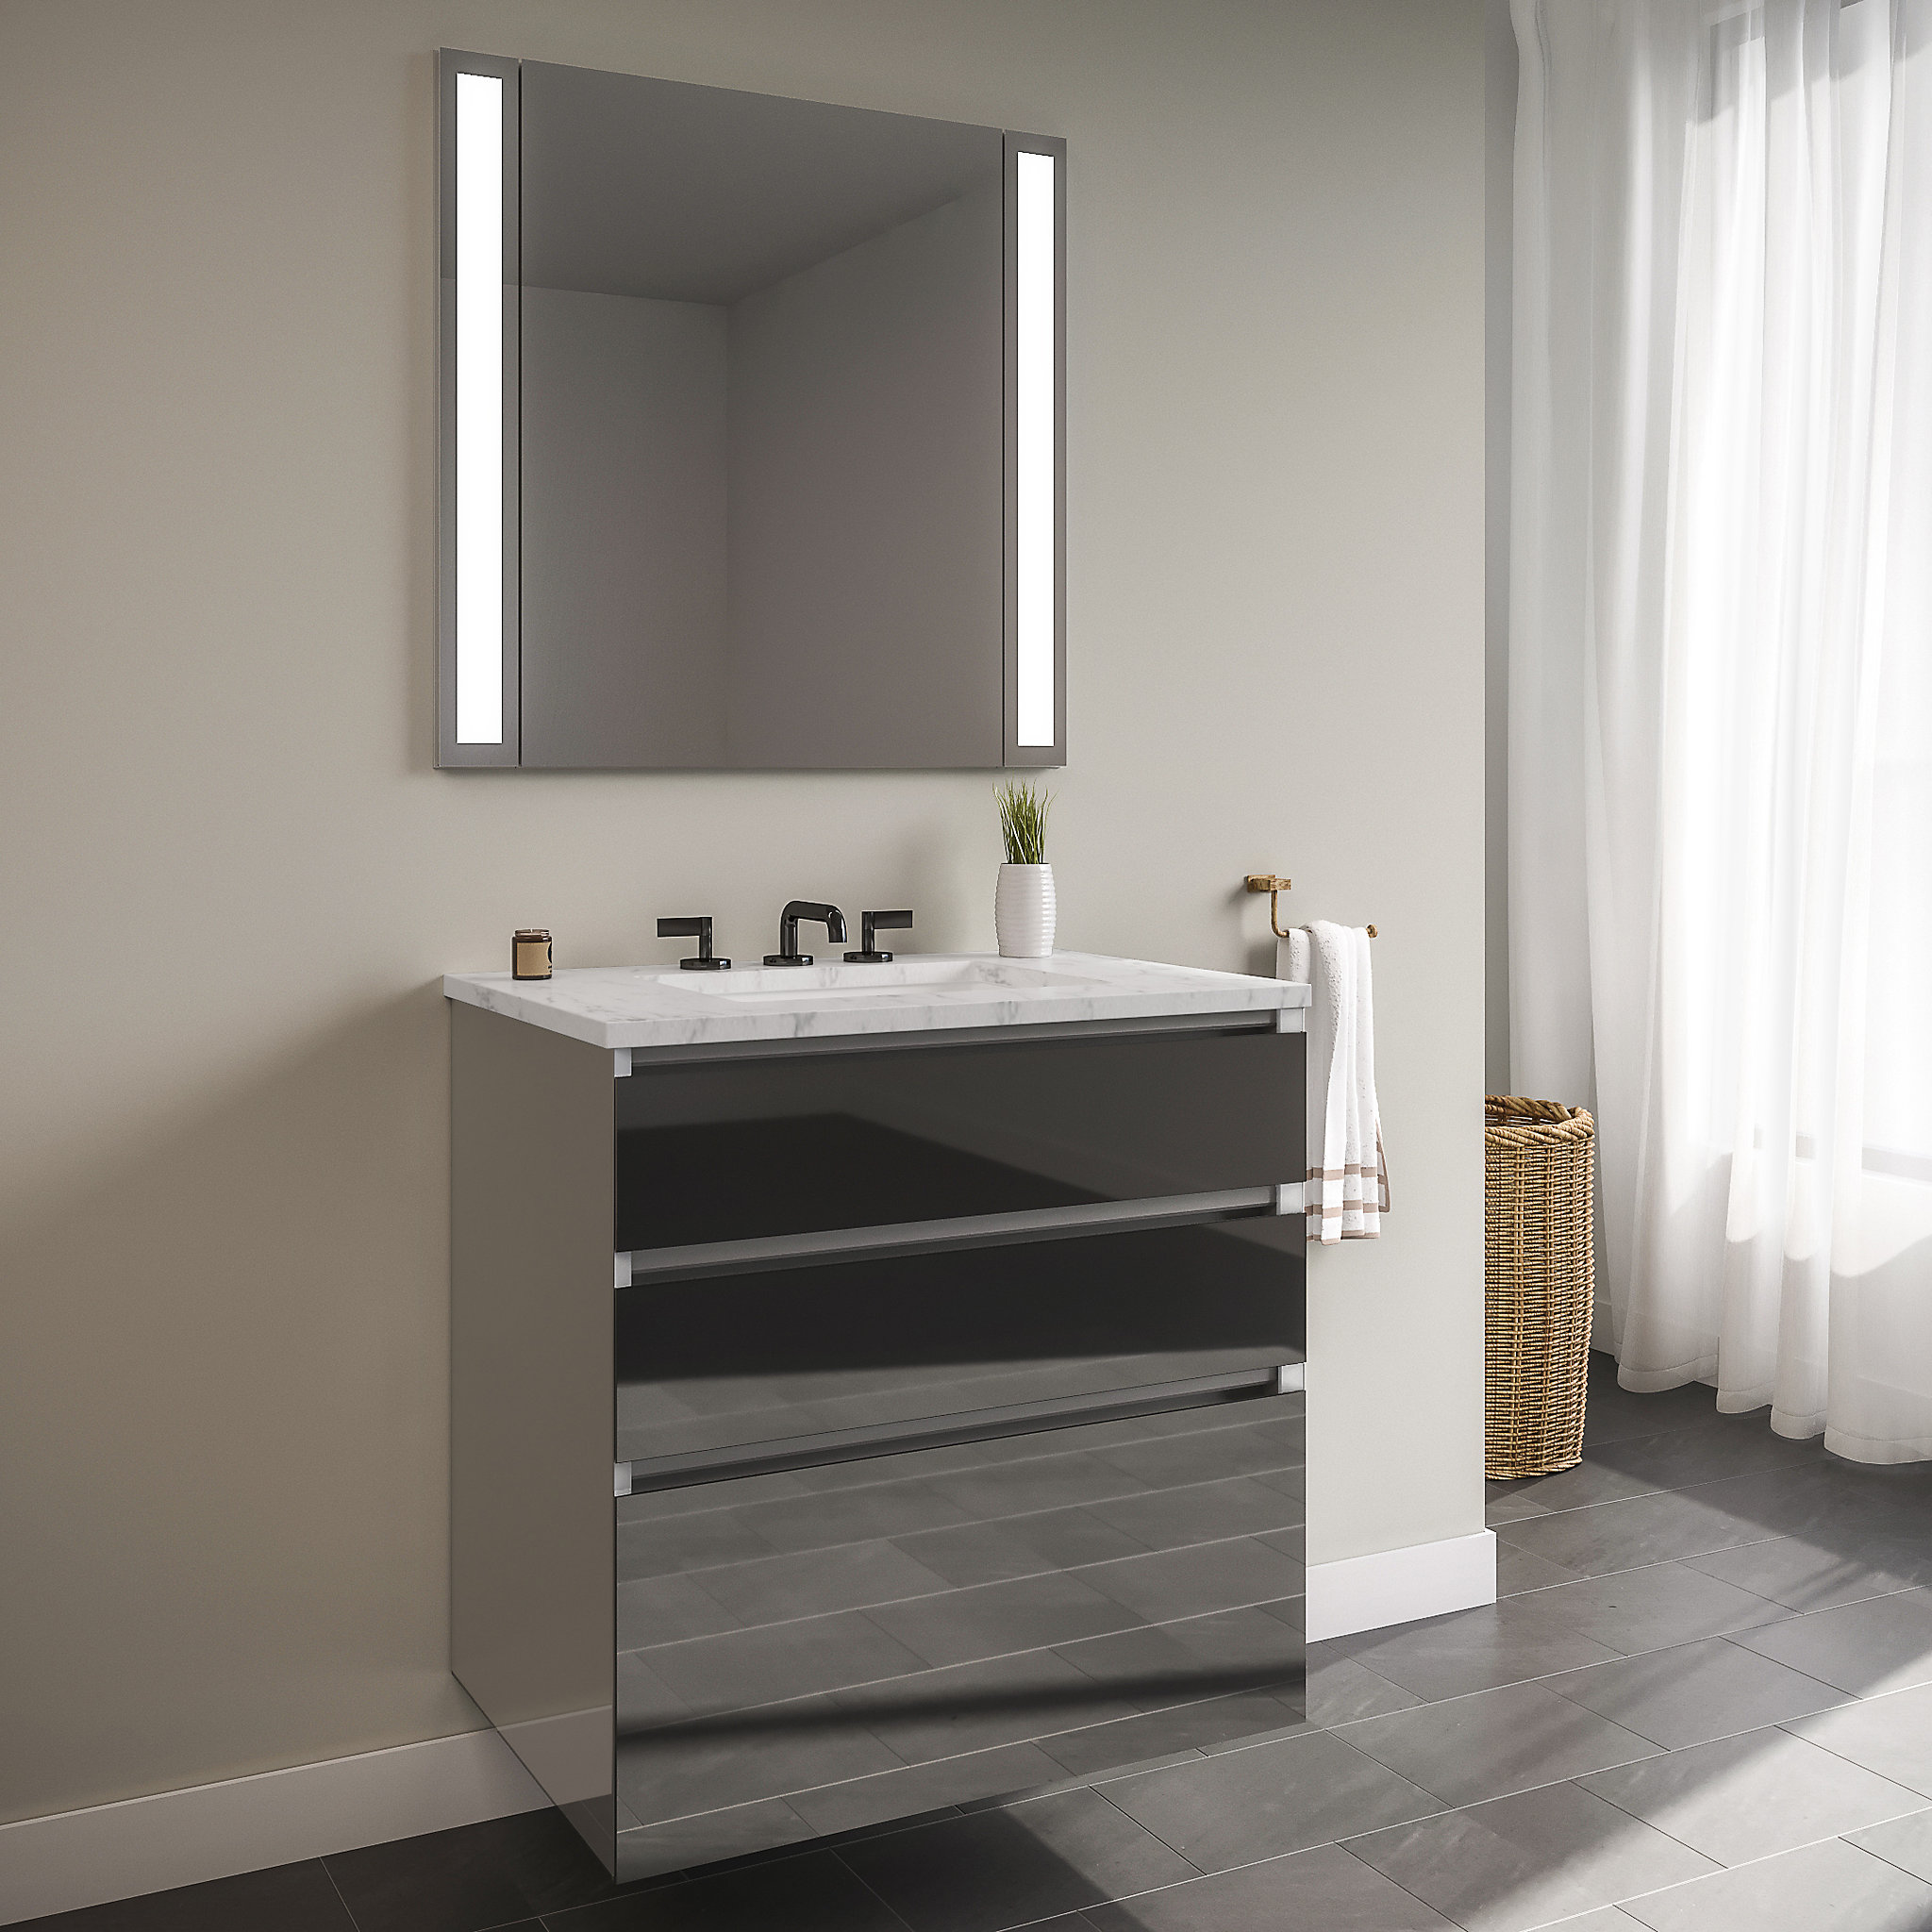 "Robern 30119400NB00003 Curated Cartesian Vanity, 30"" x 7-1/2"" x 21"", 24"" x 15"" x 21"", Three Drawer, Tinted Gray Mirror Glass, Ti"